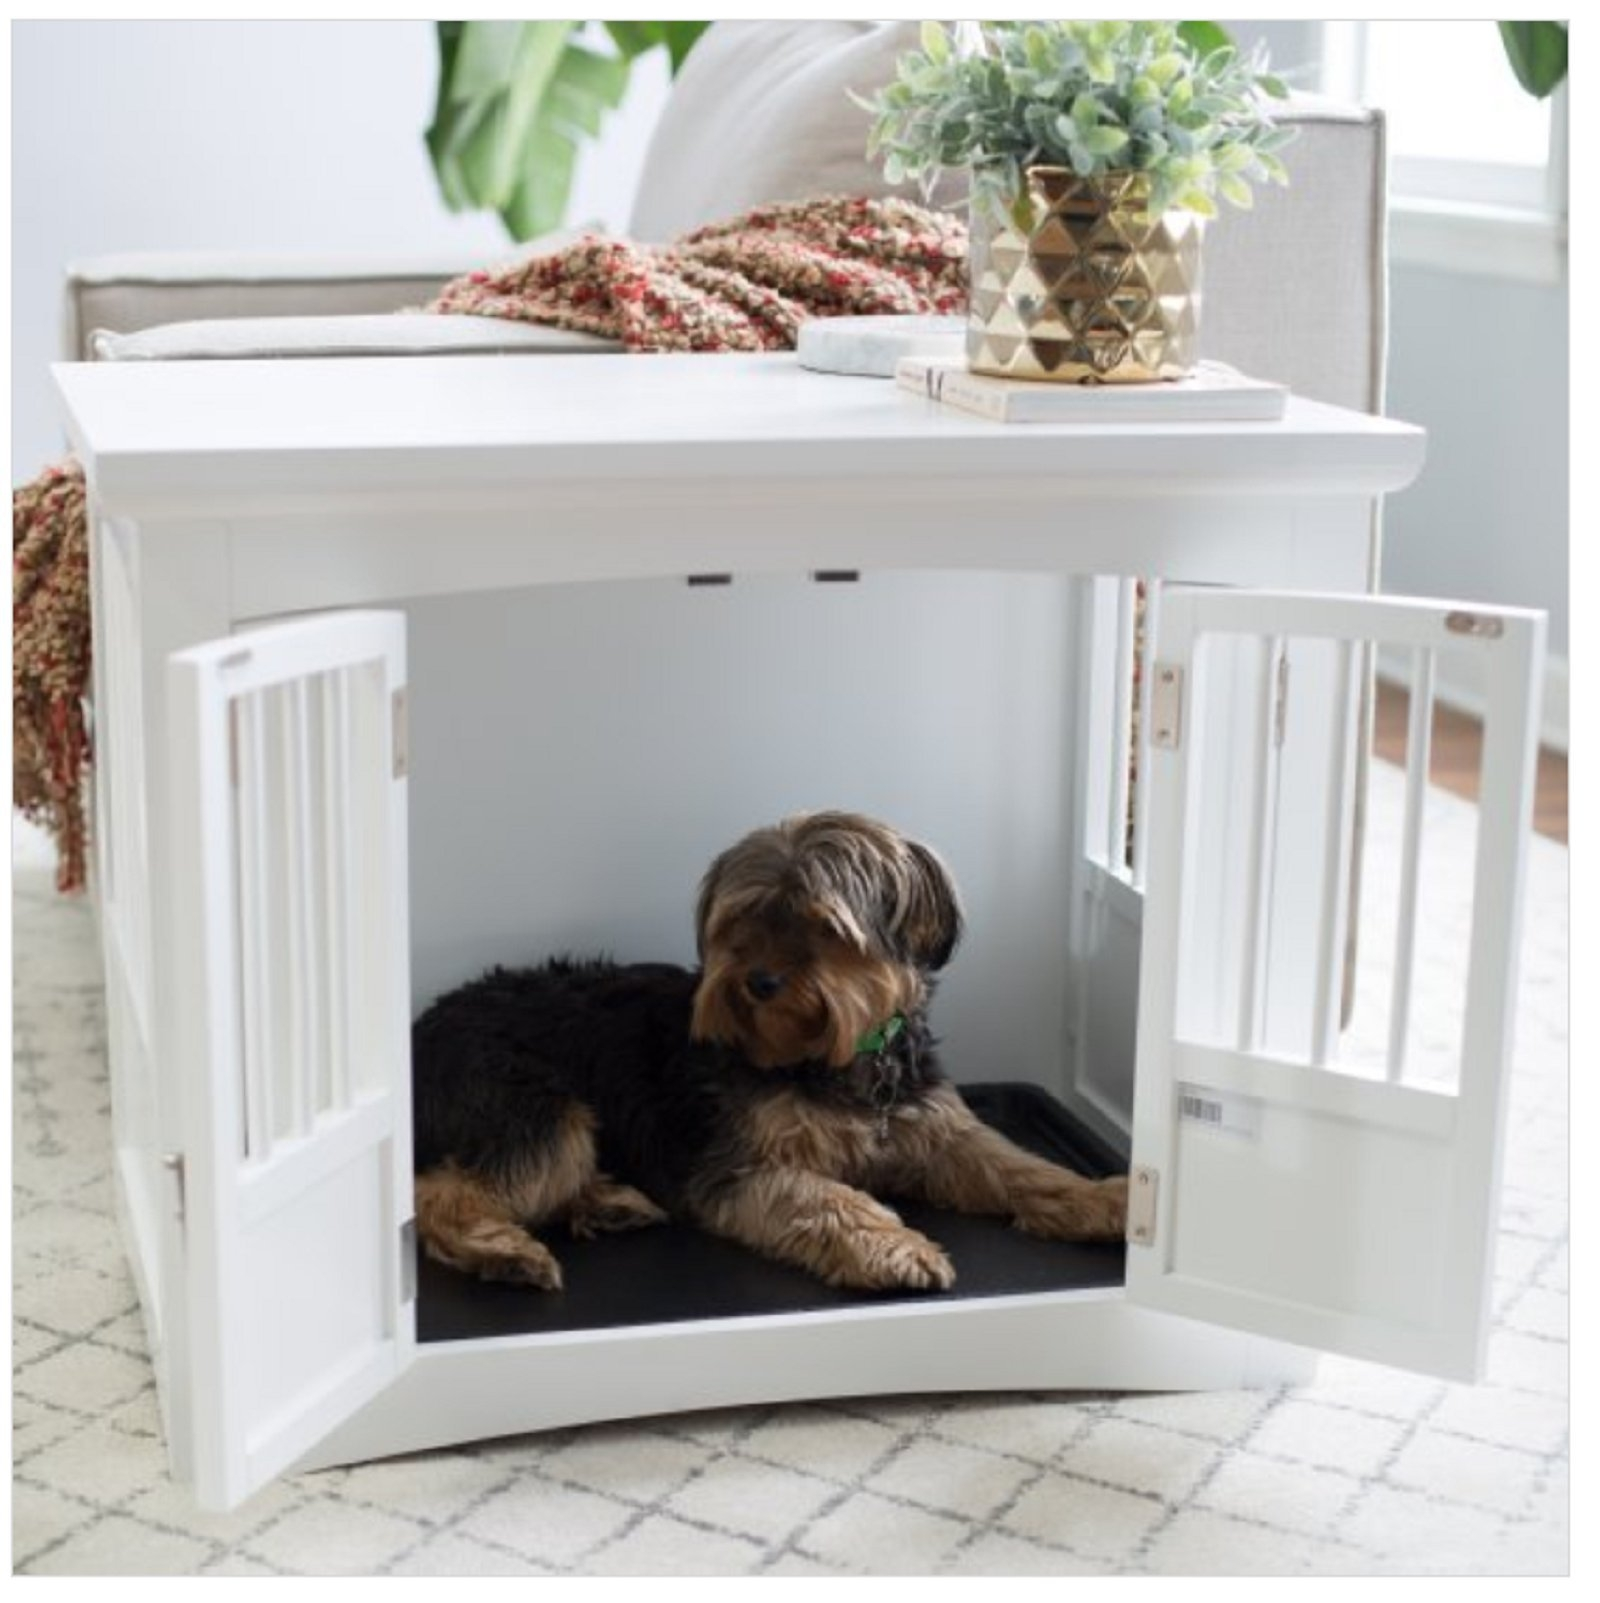 Indoor Dog Crate End Table 2 Door White Wood Bed Kennel Furniture Bedroom